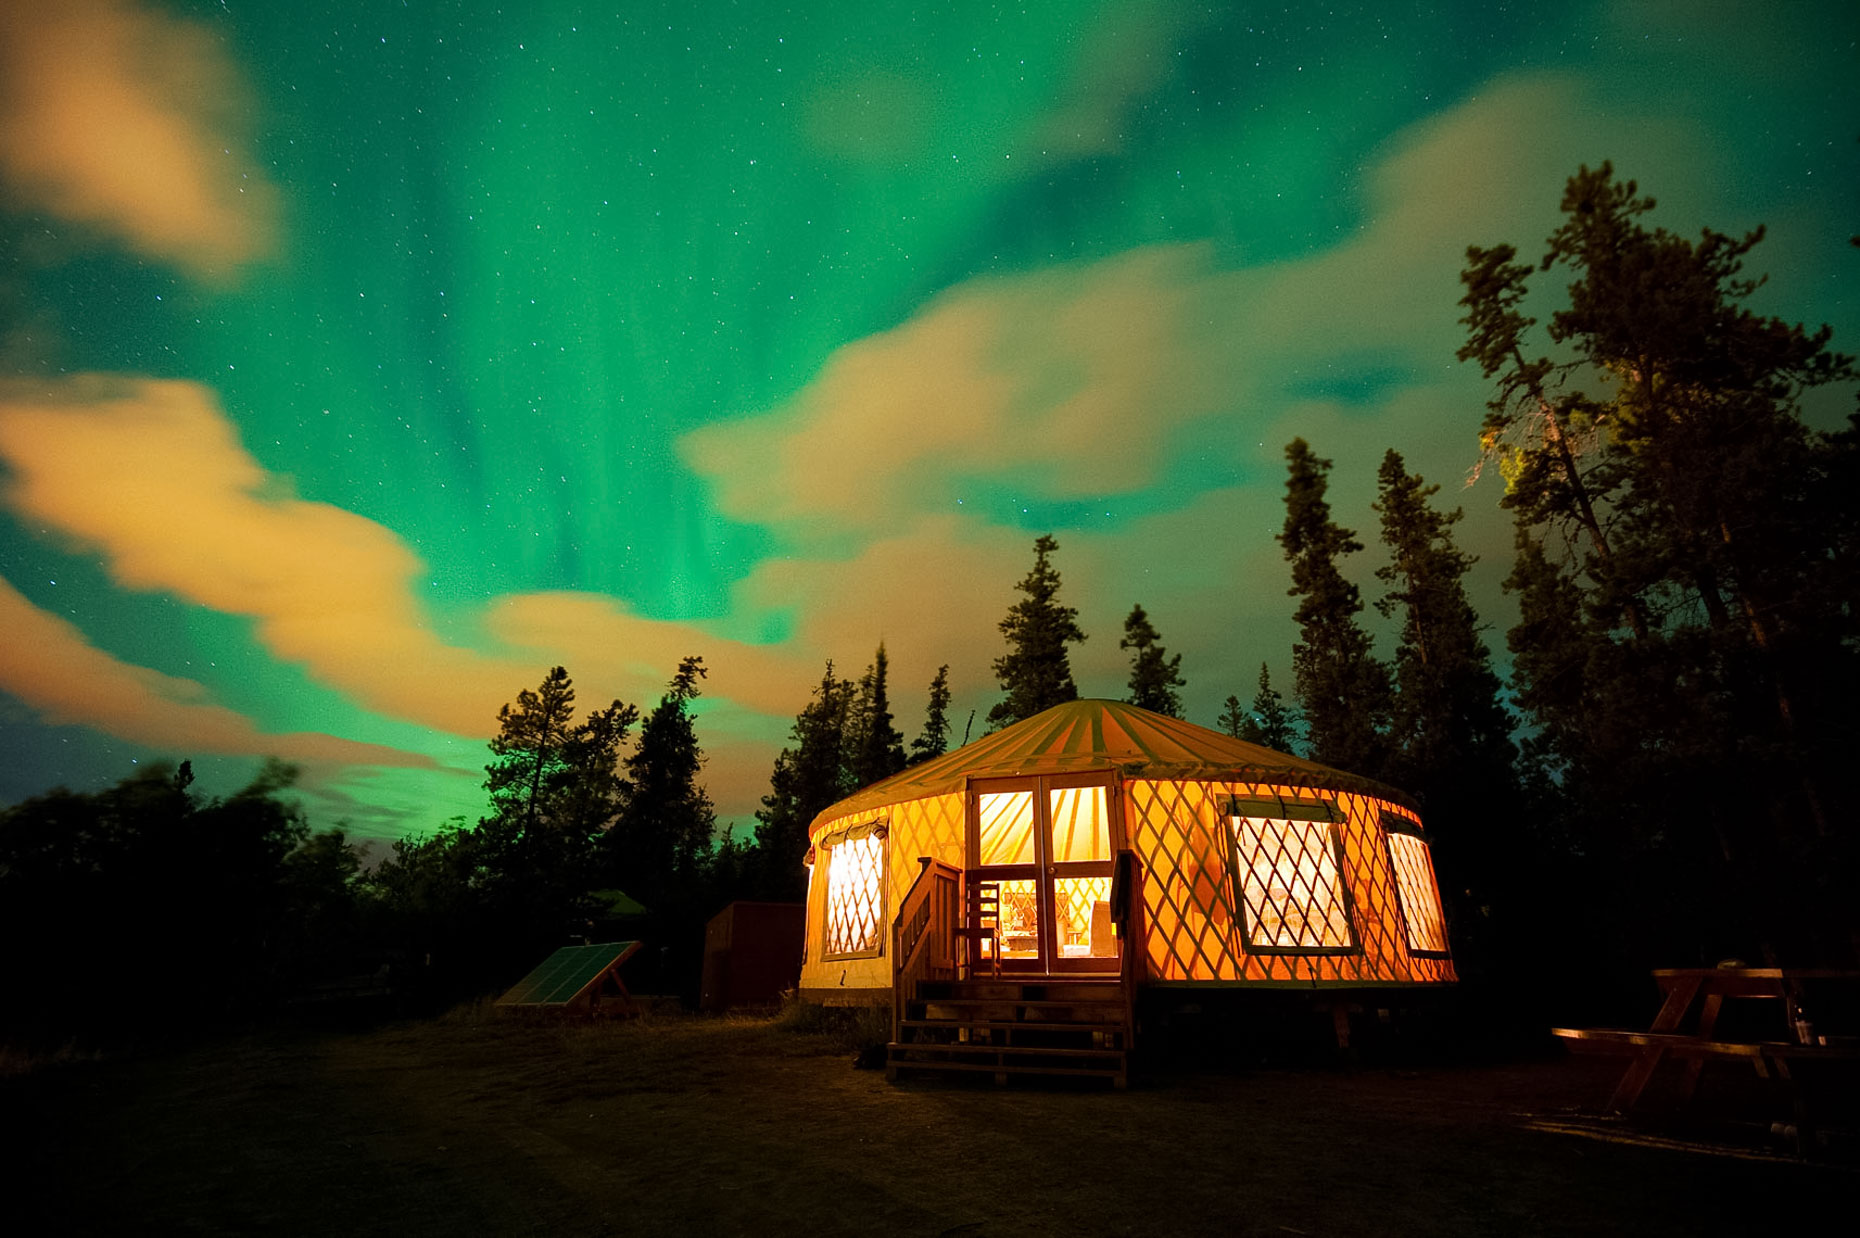 Northern Lights Over Yurt - Whitehorse, Yukon Territory, Canada